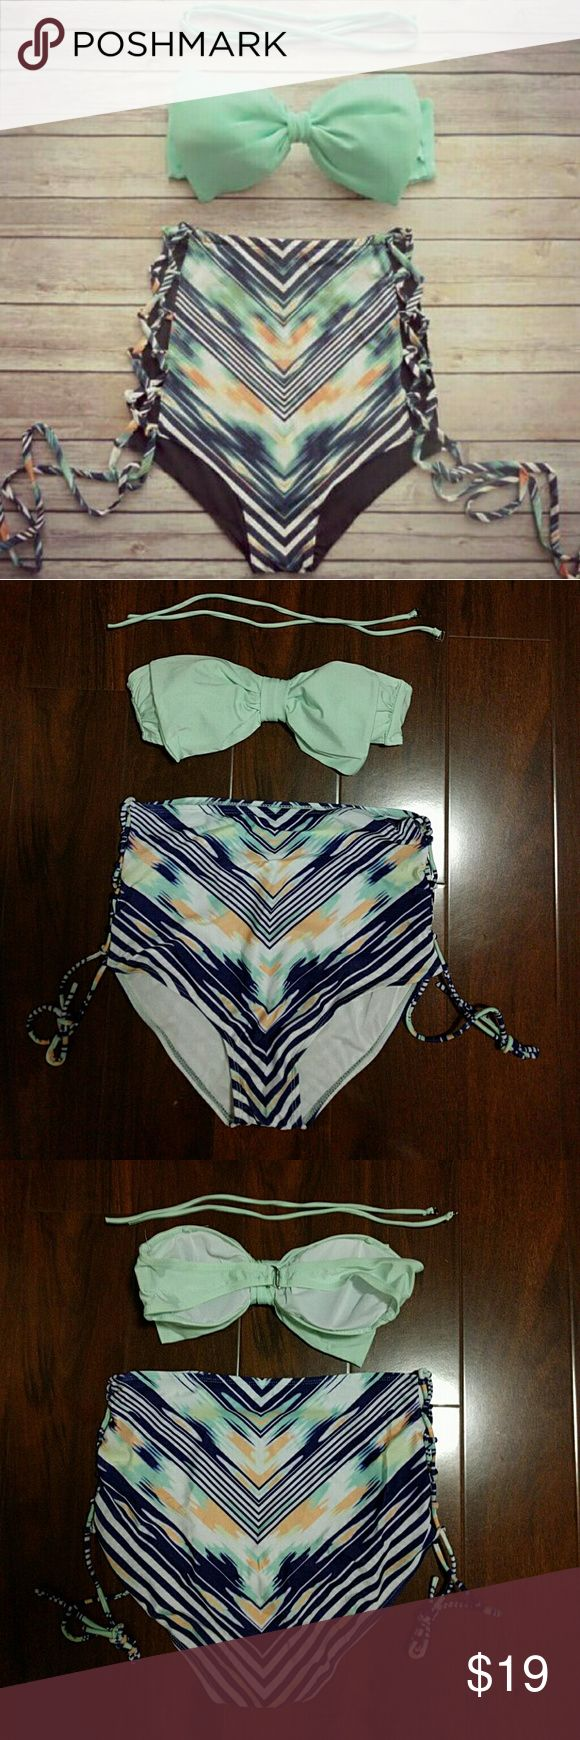 NEW ARRIVAL! GREEN BOW  BANDEAU TOP ONLY NEW ARRIVAL! BRAND NEW GREEN BOW BANDEAU TOP ONLY SELLING ITEMS SEPARATELY. I DO HAVE THE BOTTOMS IF YOU ARE INTERESTED. TOP HAS LIGHT PADDING AND IT HOOKS AT THE BACK. COMES WITH REMOVABLE STRAP THAT GOES AROUND THE NECK. nwot boutique Swim